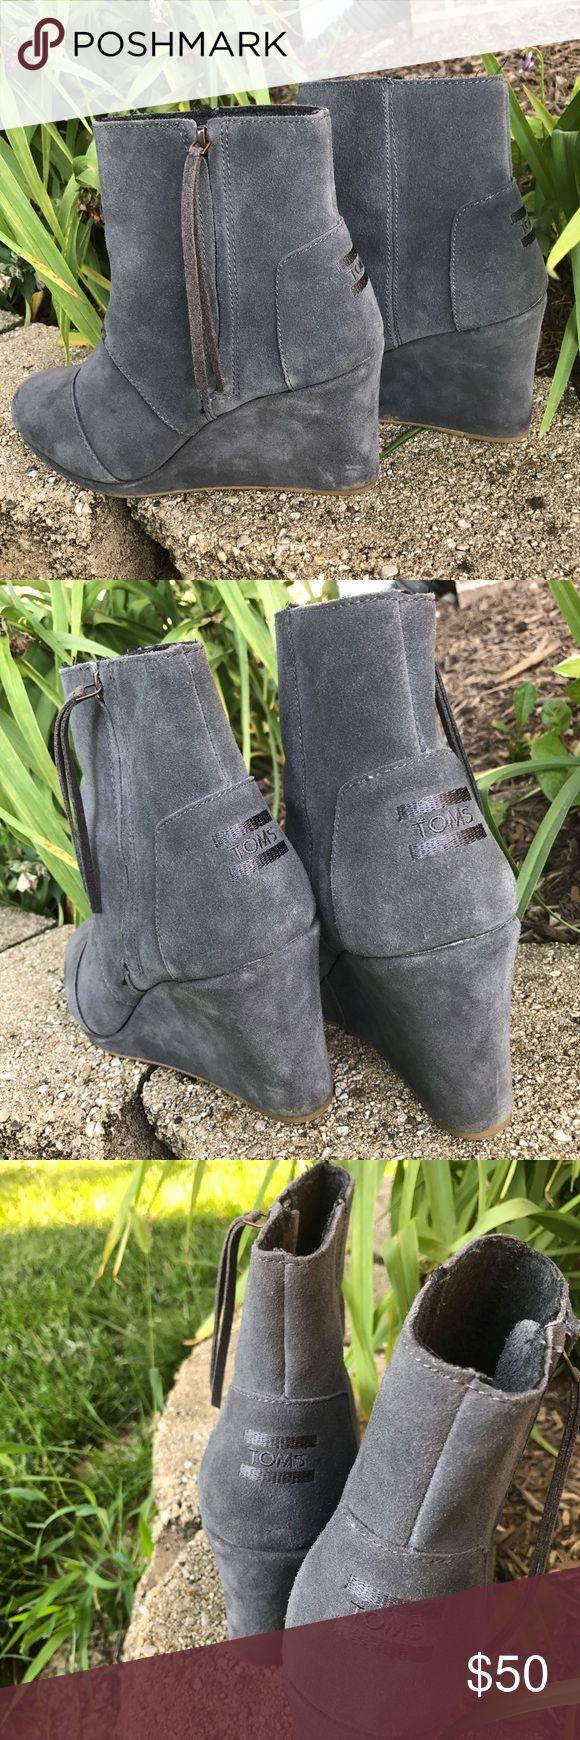 Worn once Toms desert wedges in dark grey Great condition and super cute with any outfit. You can dress them up or down let me know if you have any questions! Toms Shoes Wedges